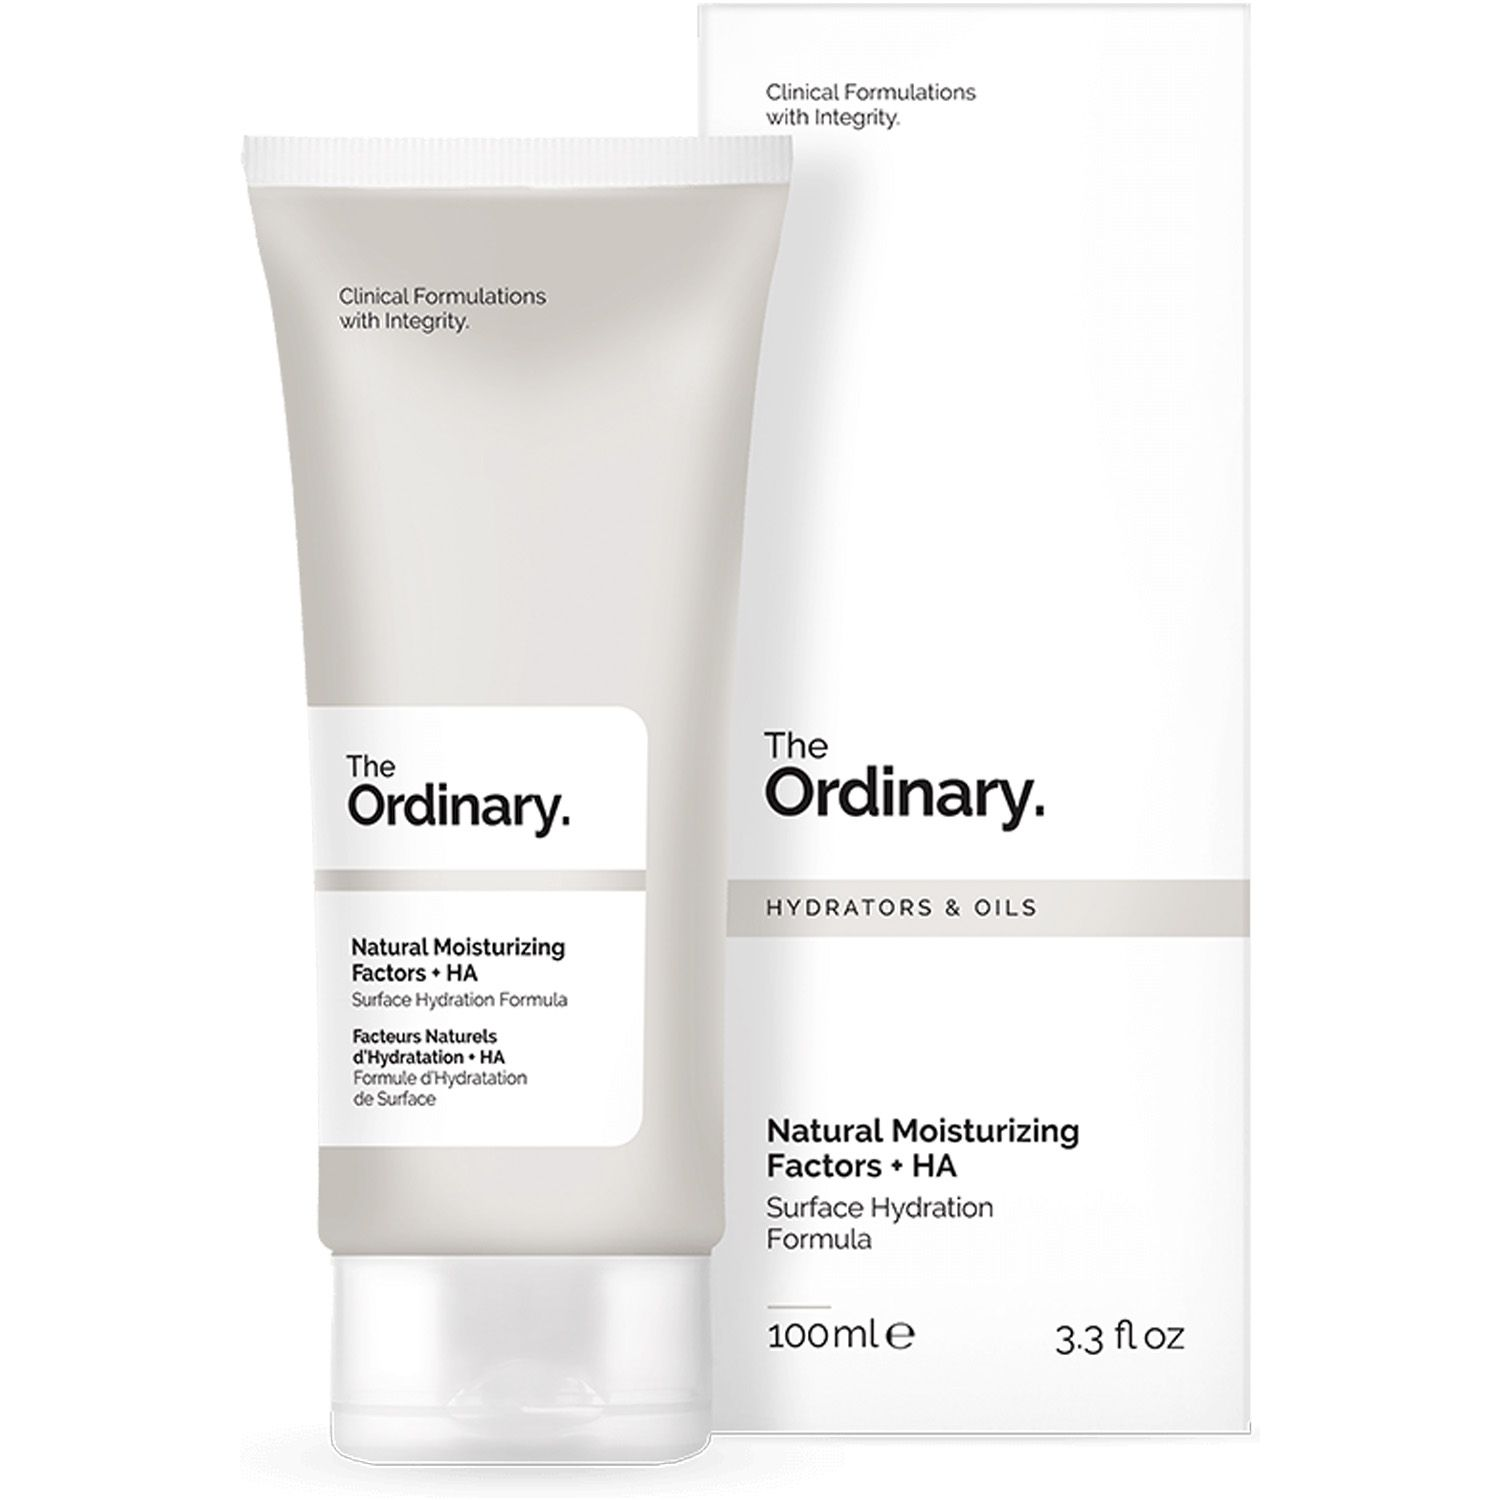 The Ordinary Natural Moisturizing Factors + HA 100ml Fatores Hidratantes Naturais Importado